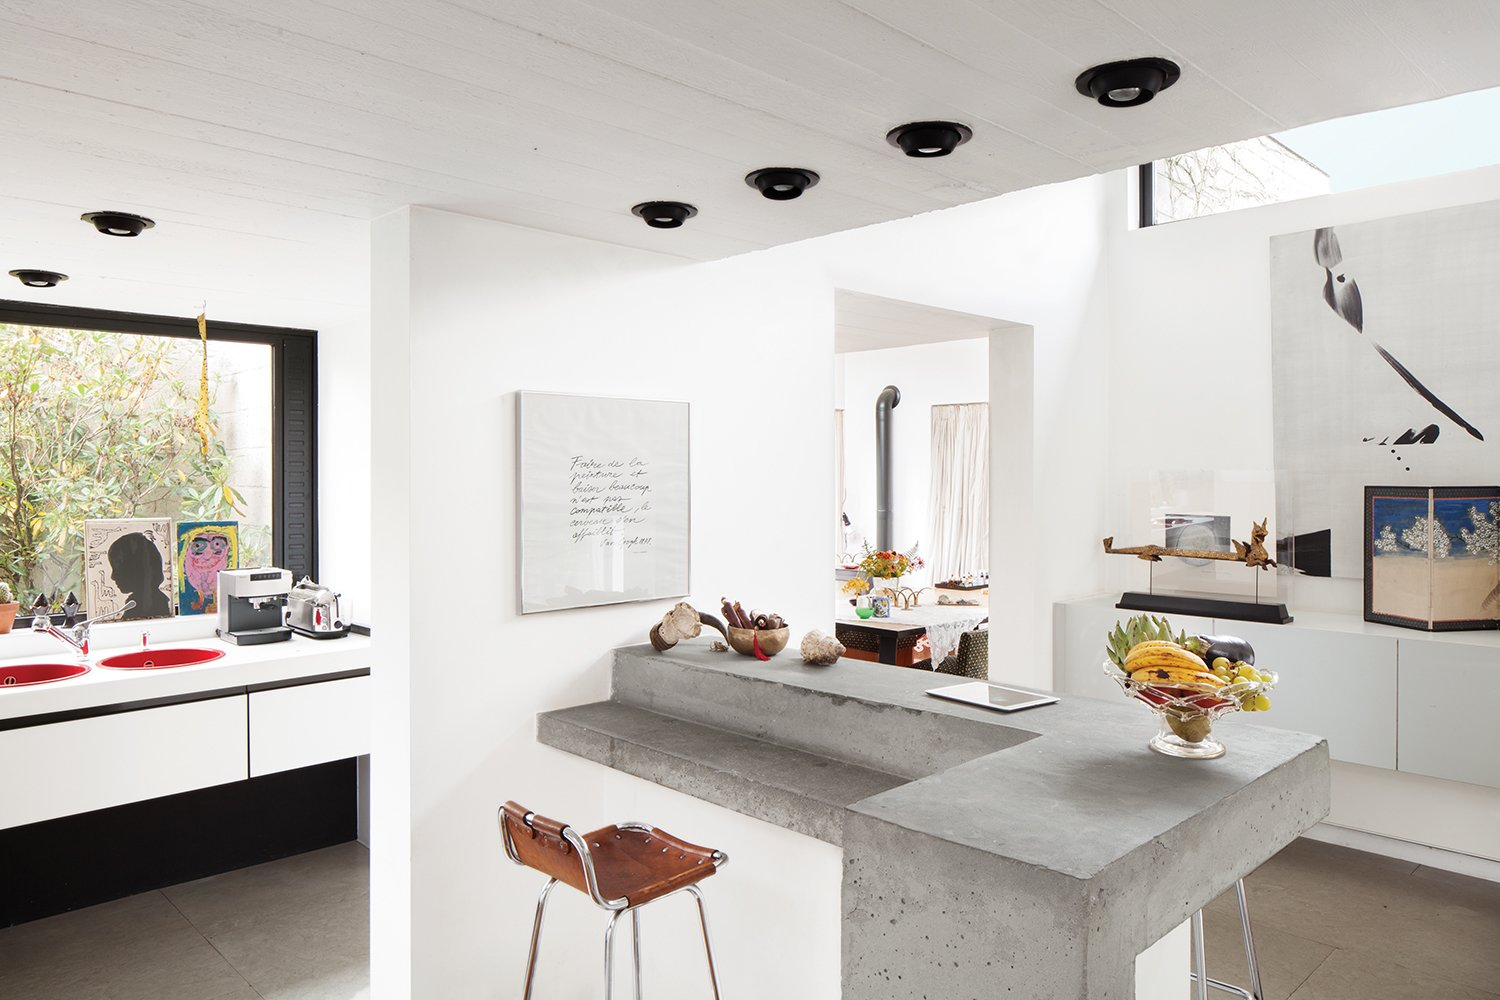 Vandemoortele worked with designer Renaud de Poorter on the interior renovations, which included opening up the heavy structure with the help of new windows and doors to the outside. They didn't want to gut the space, and kept existing decorative motifs like the dining room's circa-1975 painted cupboard. Tagged: Kitchen, Concrete Counter, and Recessed Lighting. A Concrete Home in Rural Belgium - Photo 4 of 9